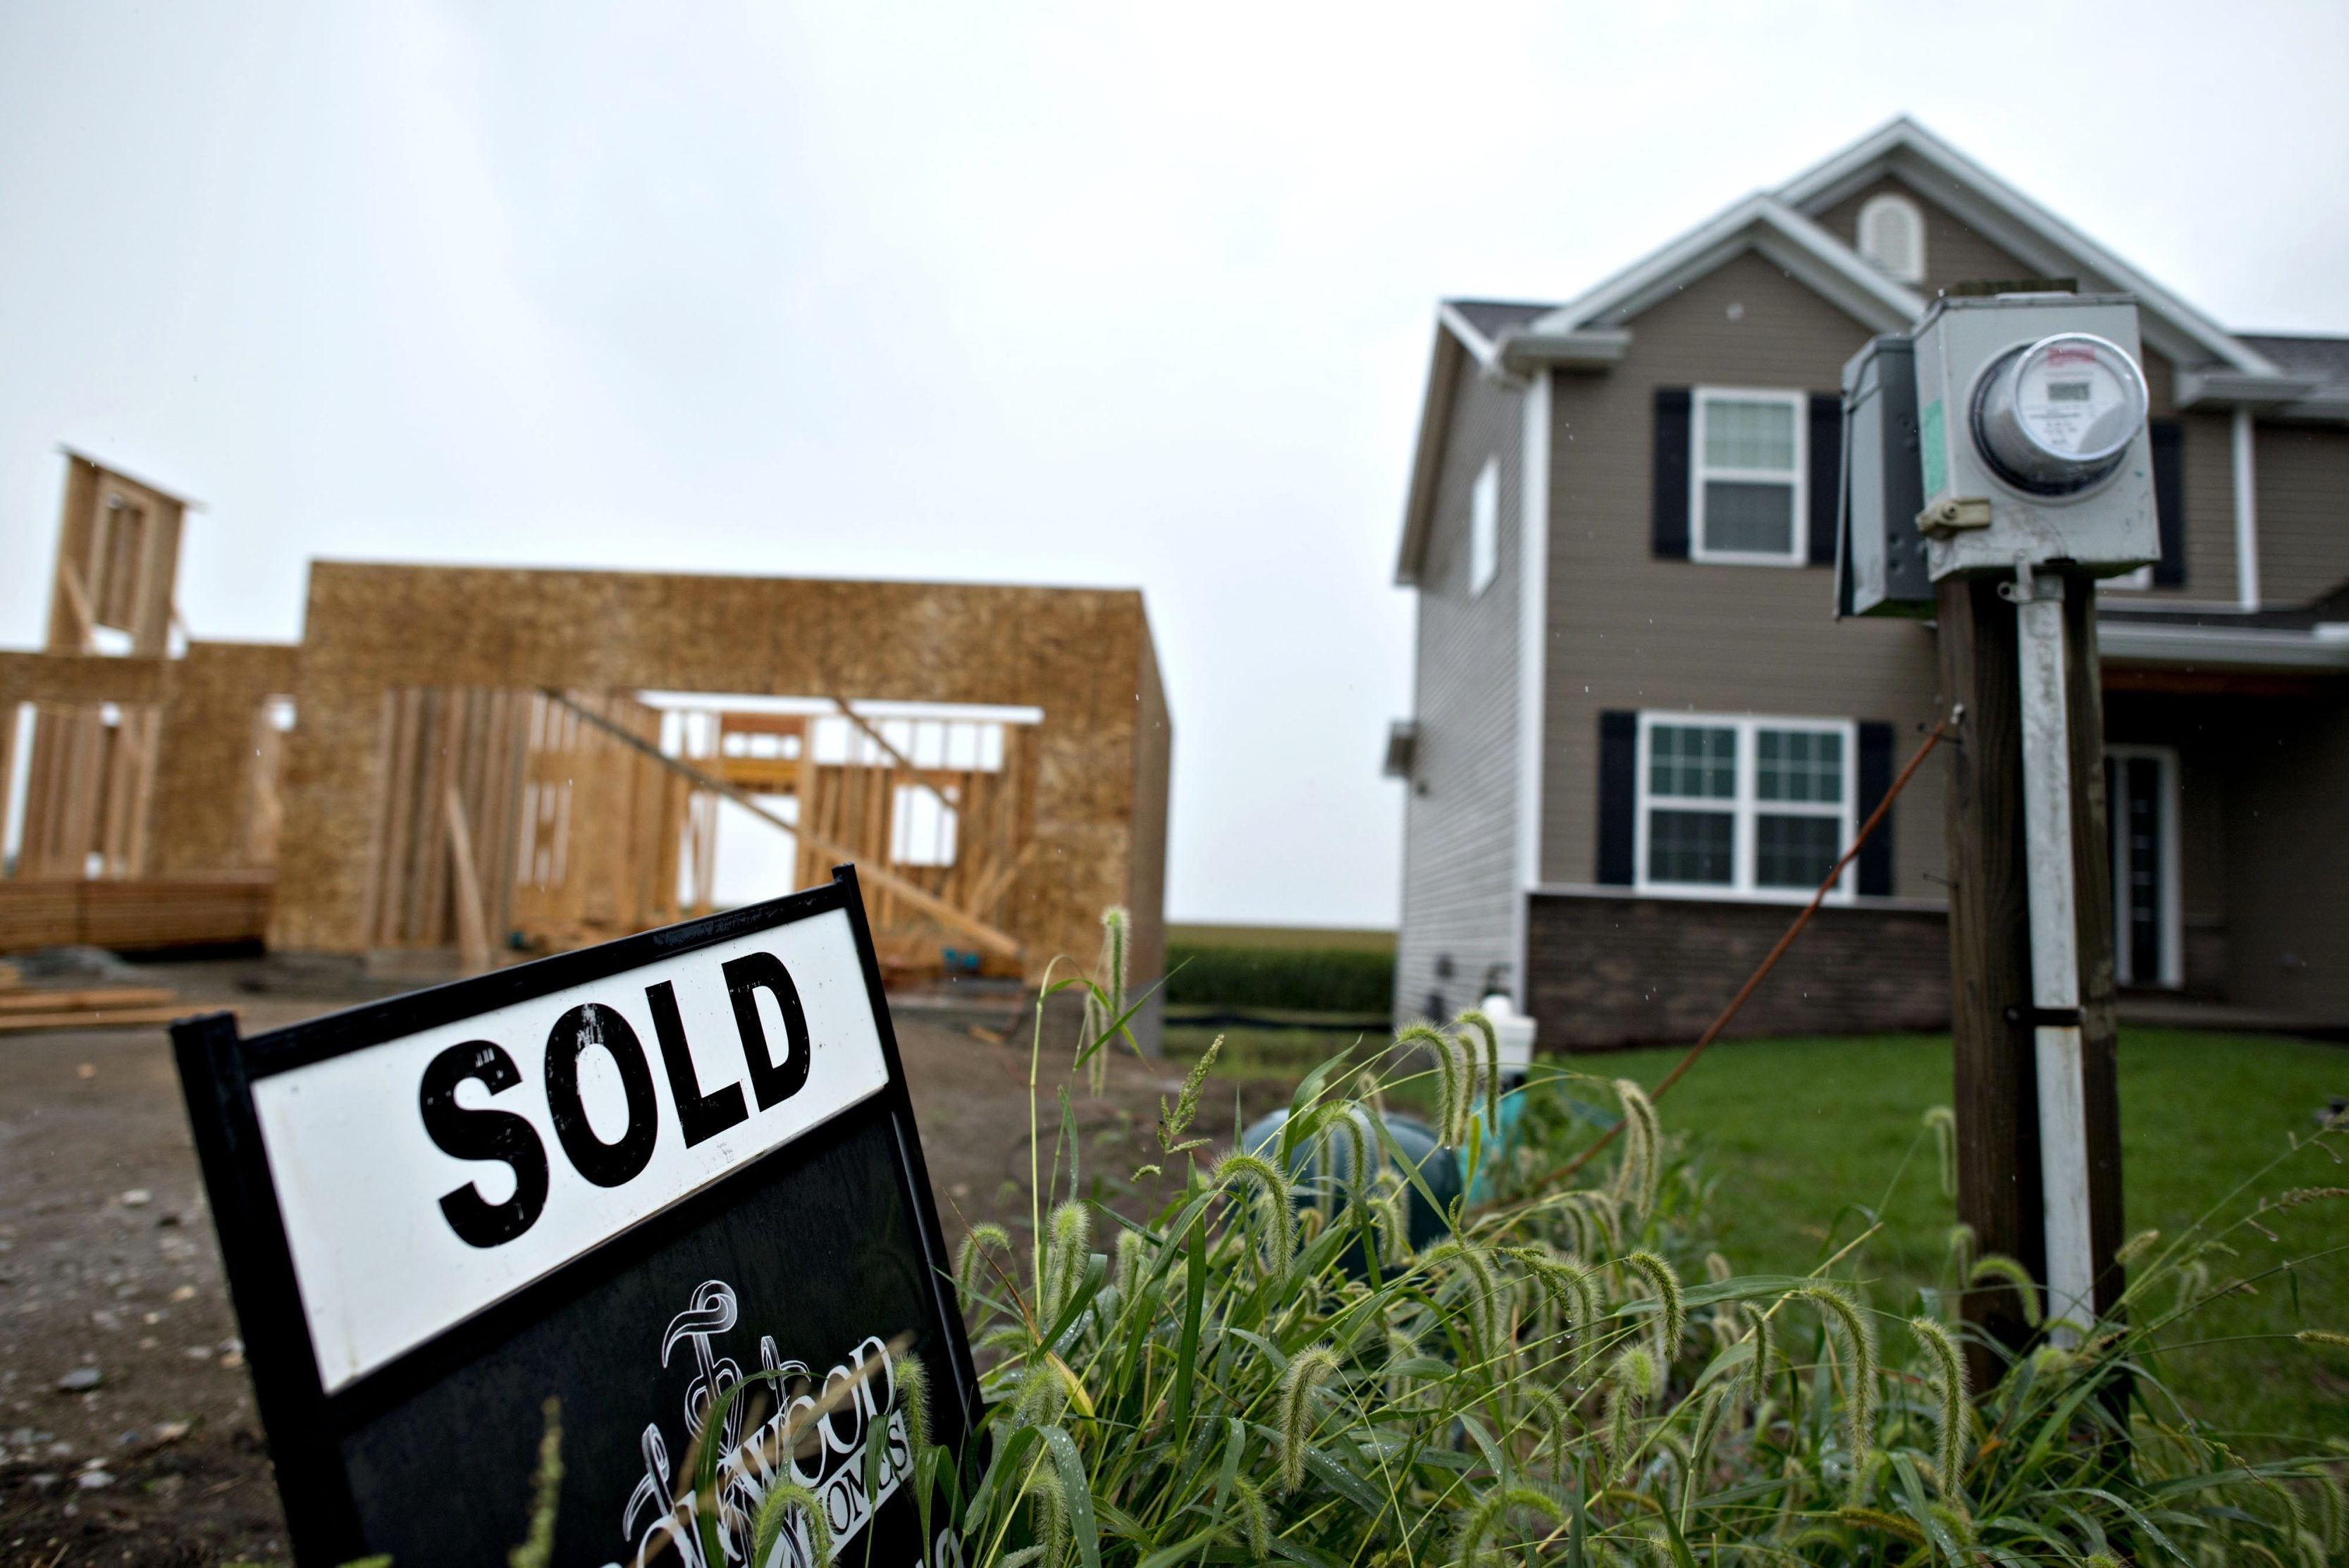 Builders began construction on 1.01 million new homes in the United States in 2014, including this one in Peoria, Ill., the Commerce Department says. It was the most new-home starts since 2007.